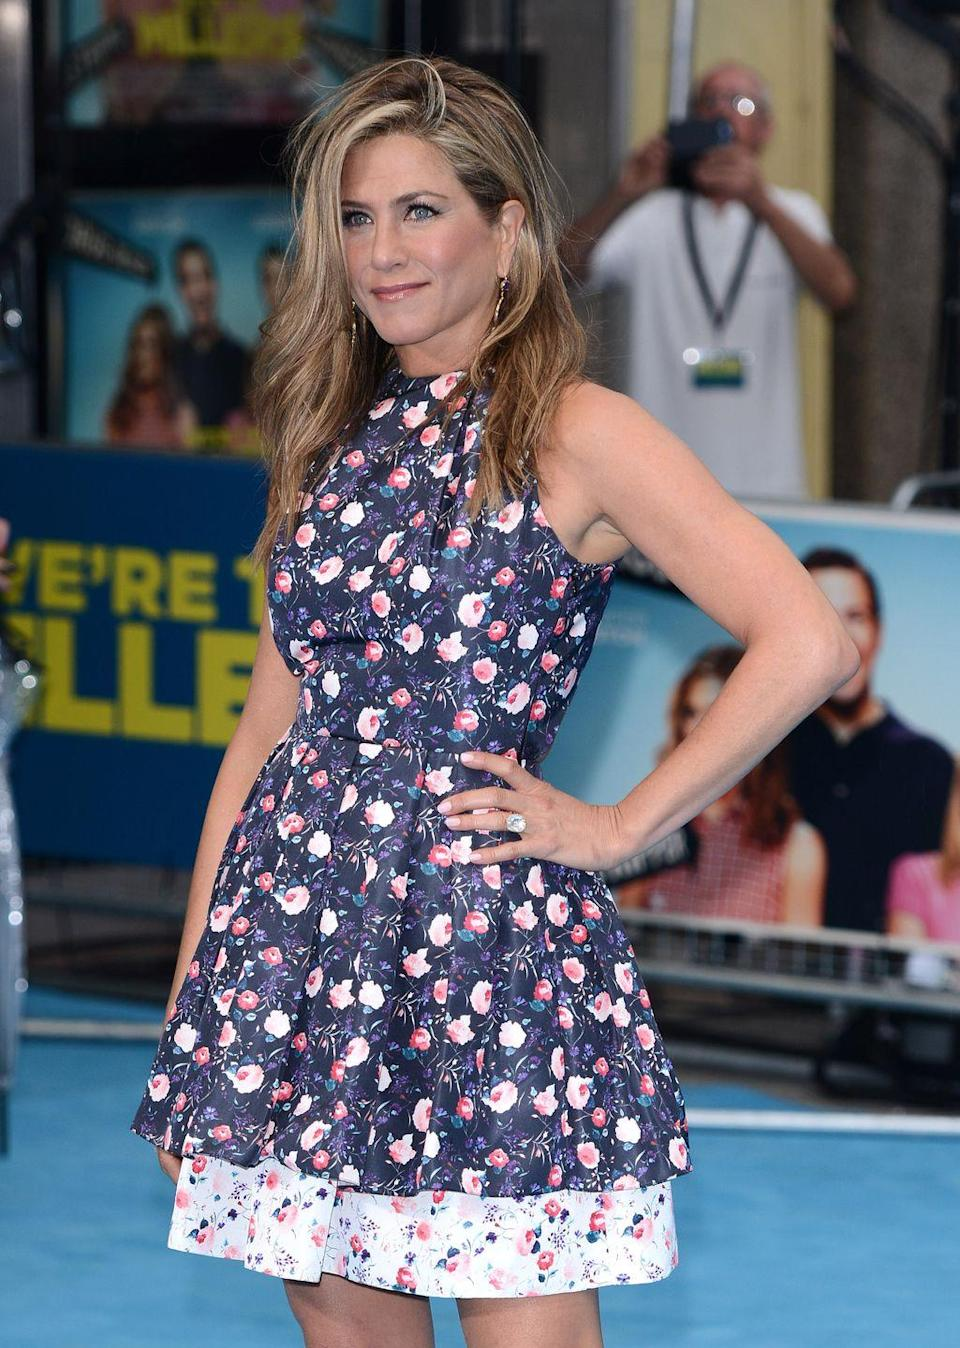 """<p>Aniston is all about hanging out outside, but she wears sunscreen. """"I still sit in the sun...you need that vitamin D for a glow and your mood,"""" she told <a href=""""https://www.vogue.com/article/jennifer-aniston-skincare-routine-the-morning-show"""" rel=""""nofollow noopener"""" target=""""_blank"""" data-ylk=""""slk:Vogue"""" class=""""link rapid-noclick-resp"""">Vogue</a>.</p>"""